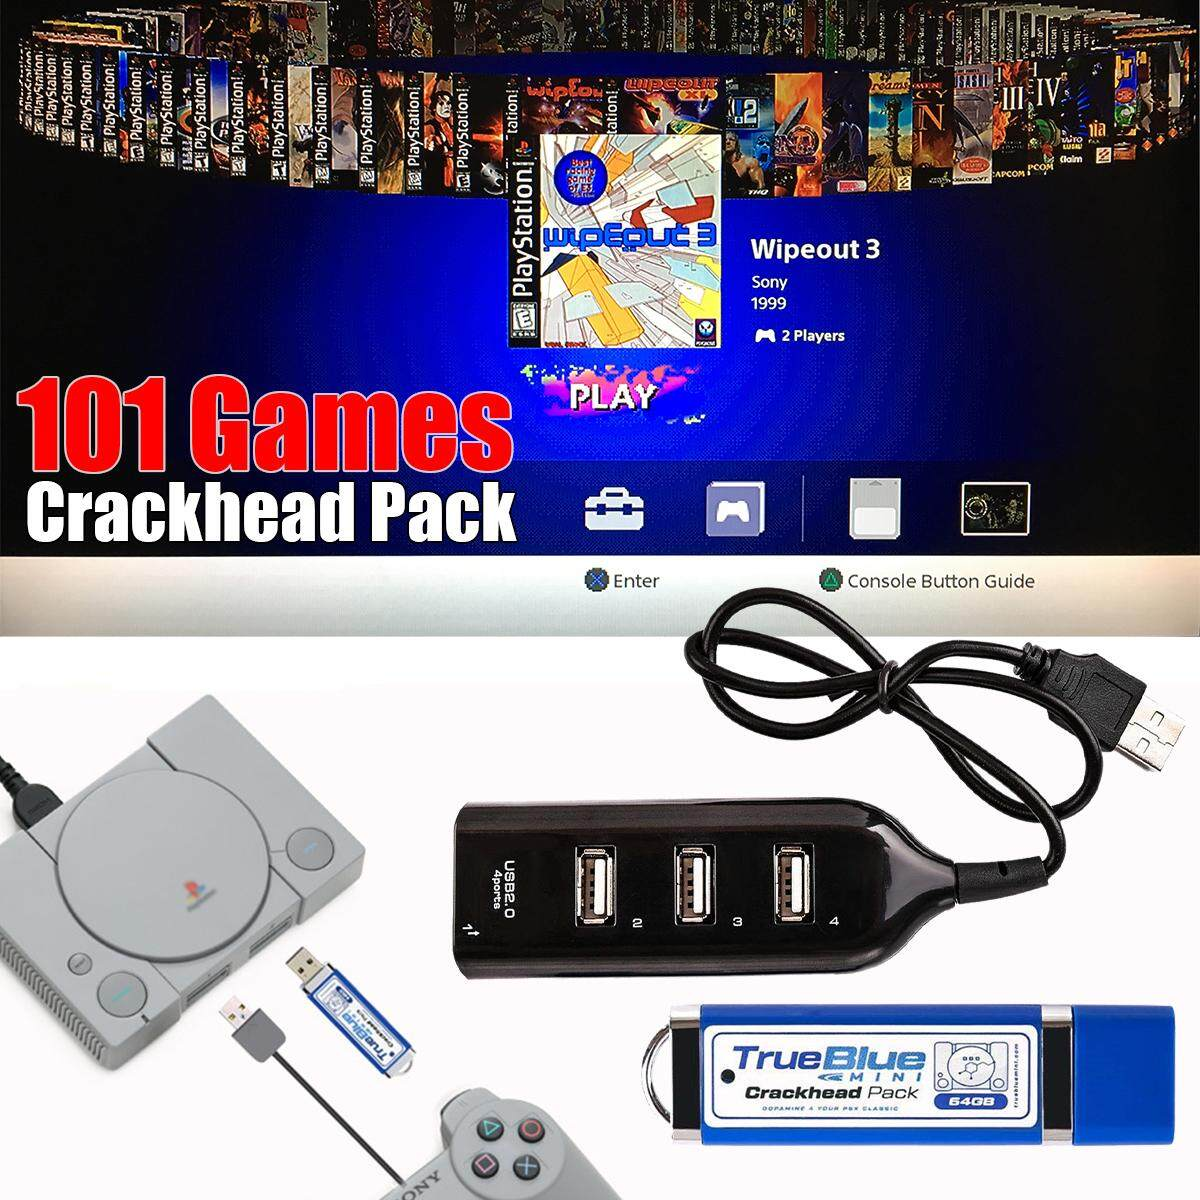 True Blue Mini Crackhead Pack 101 Games For PlayStation Classic Game Accessories